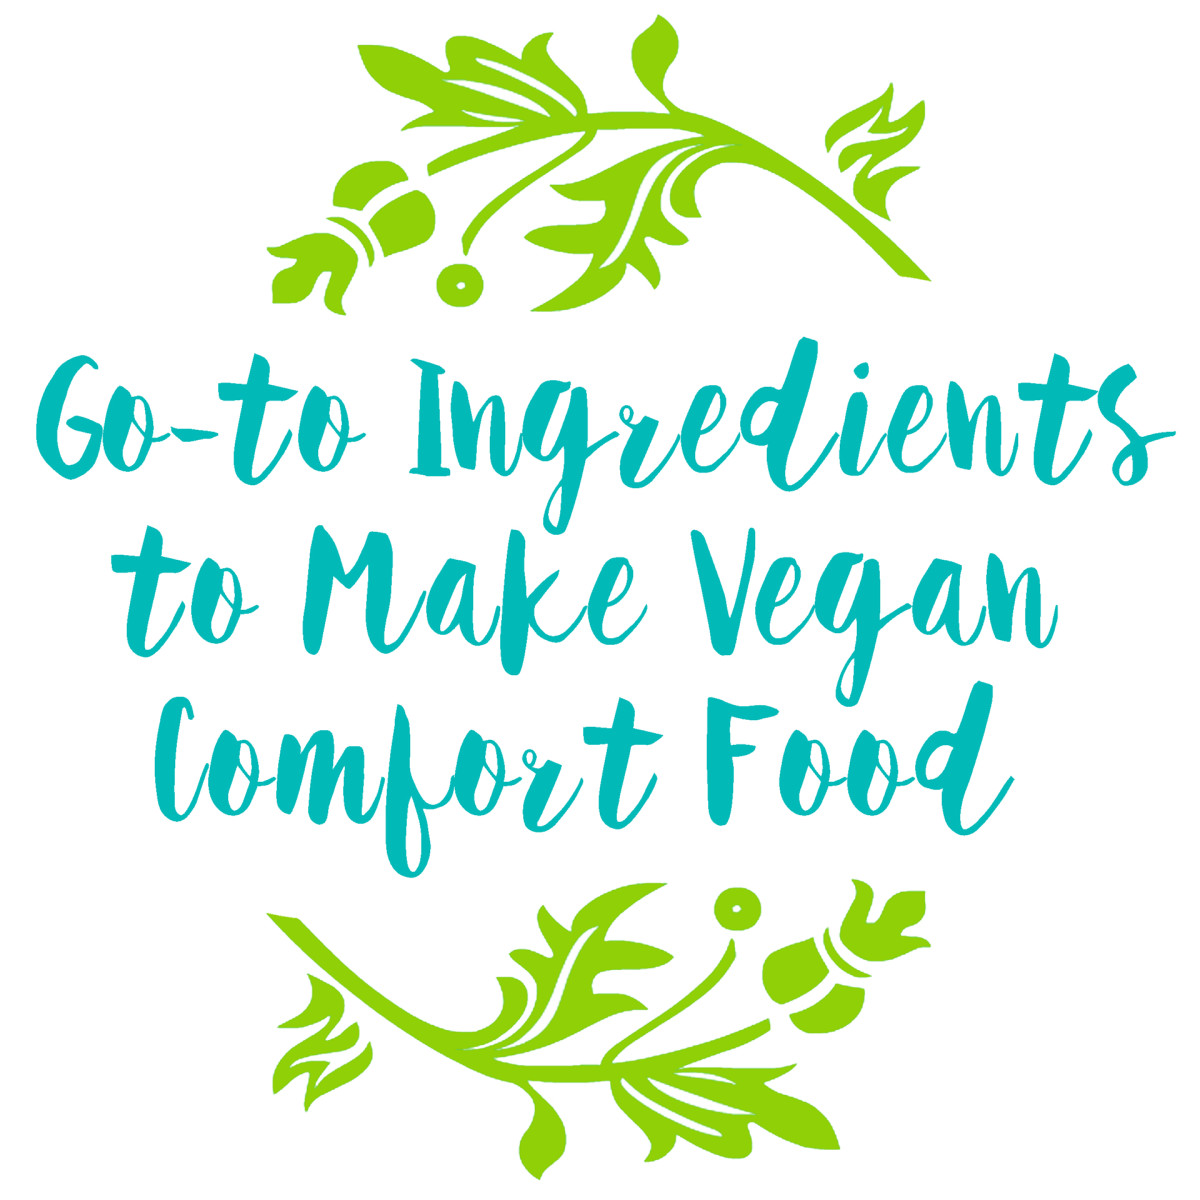 Review of a list of ingredients to keep handy in your kitchen for any time you're craving vegan comfort food.